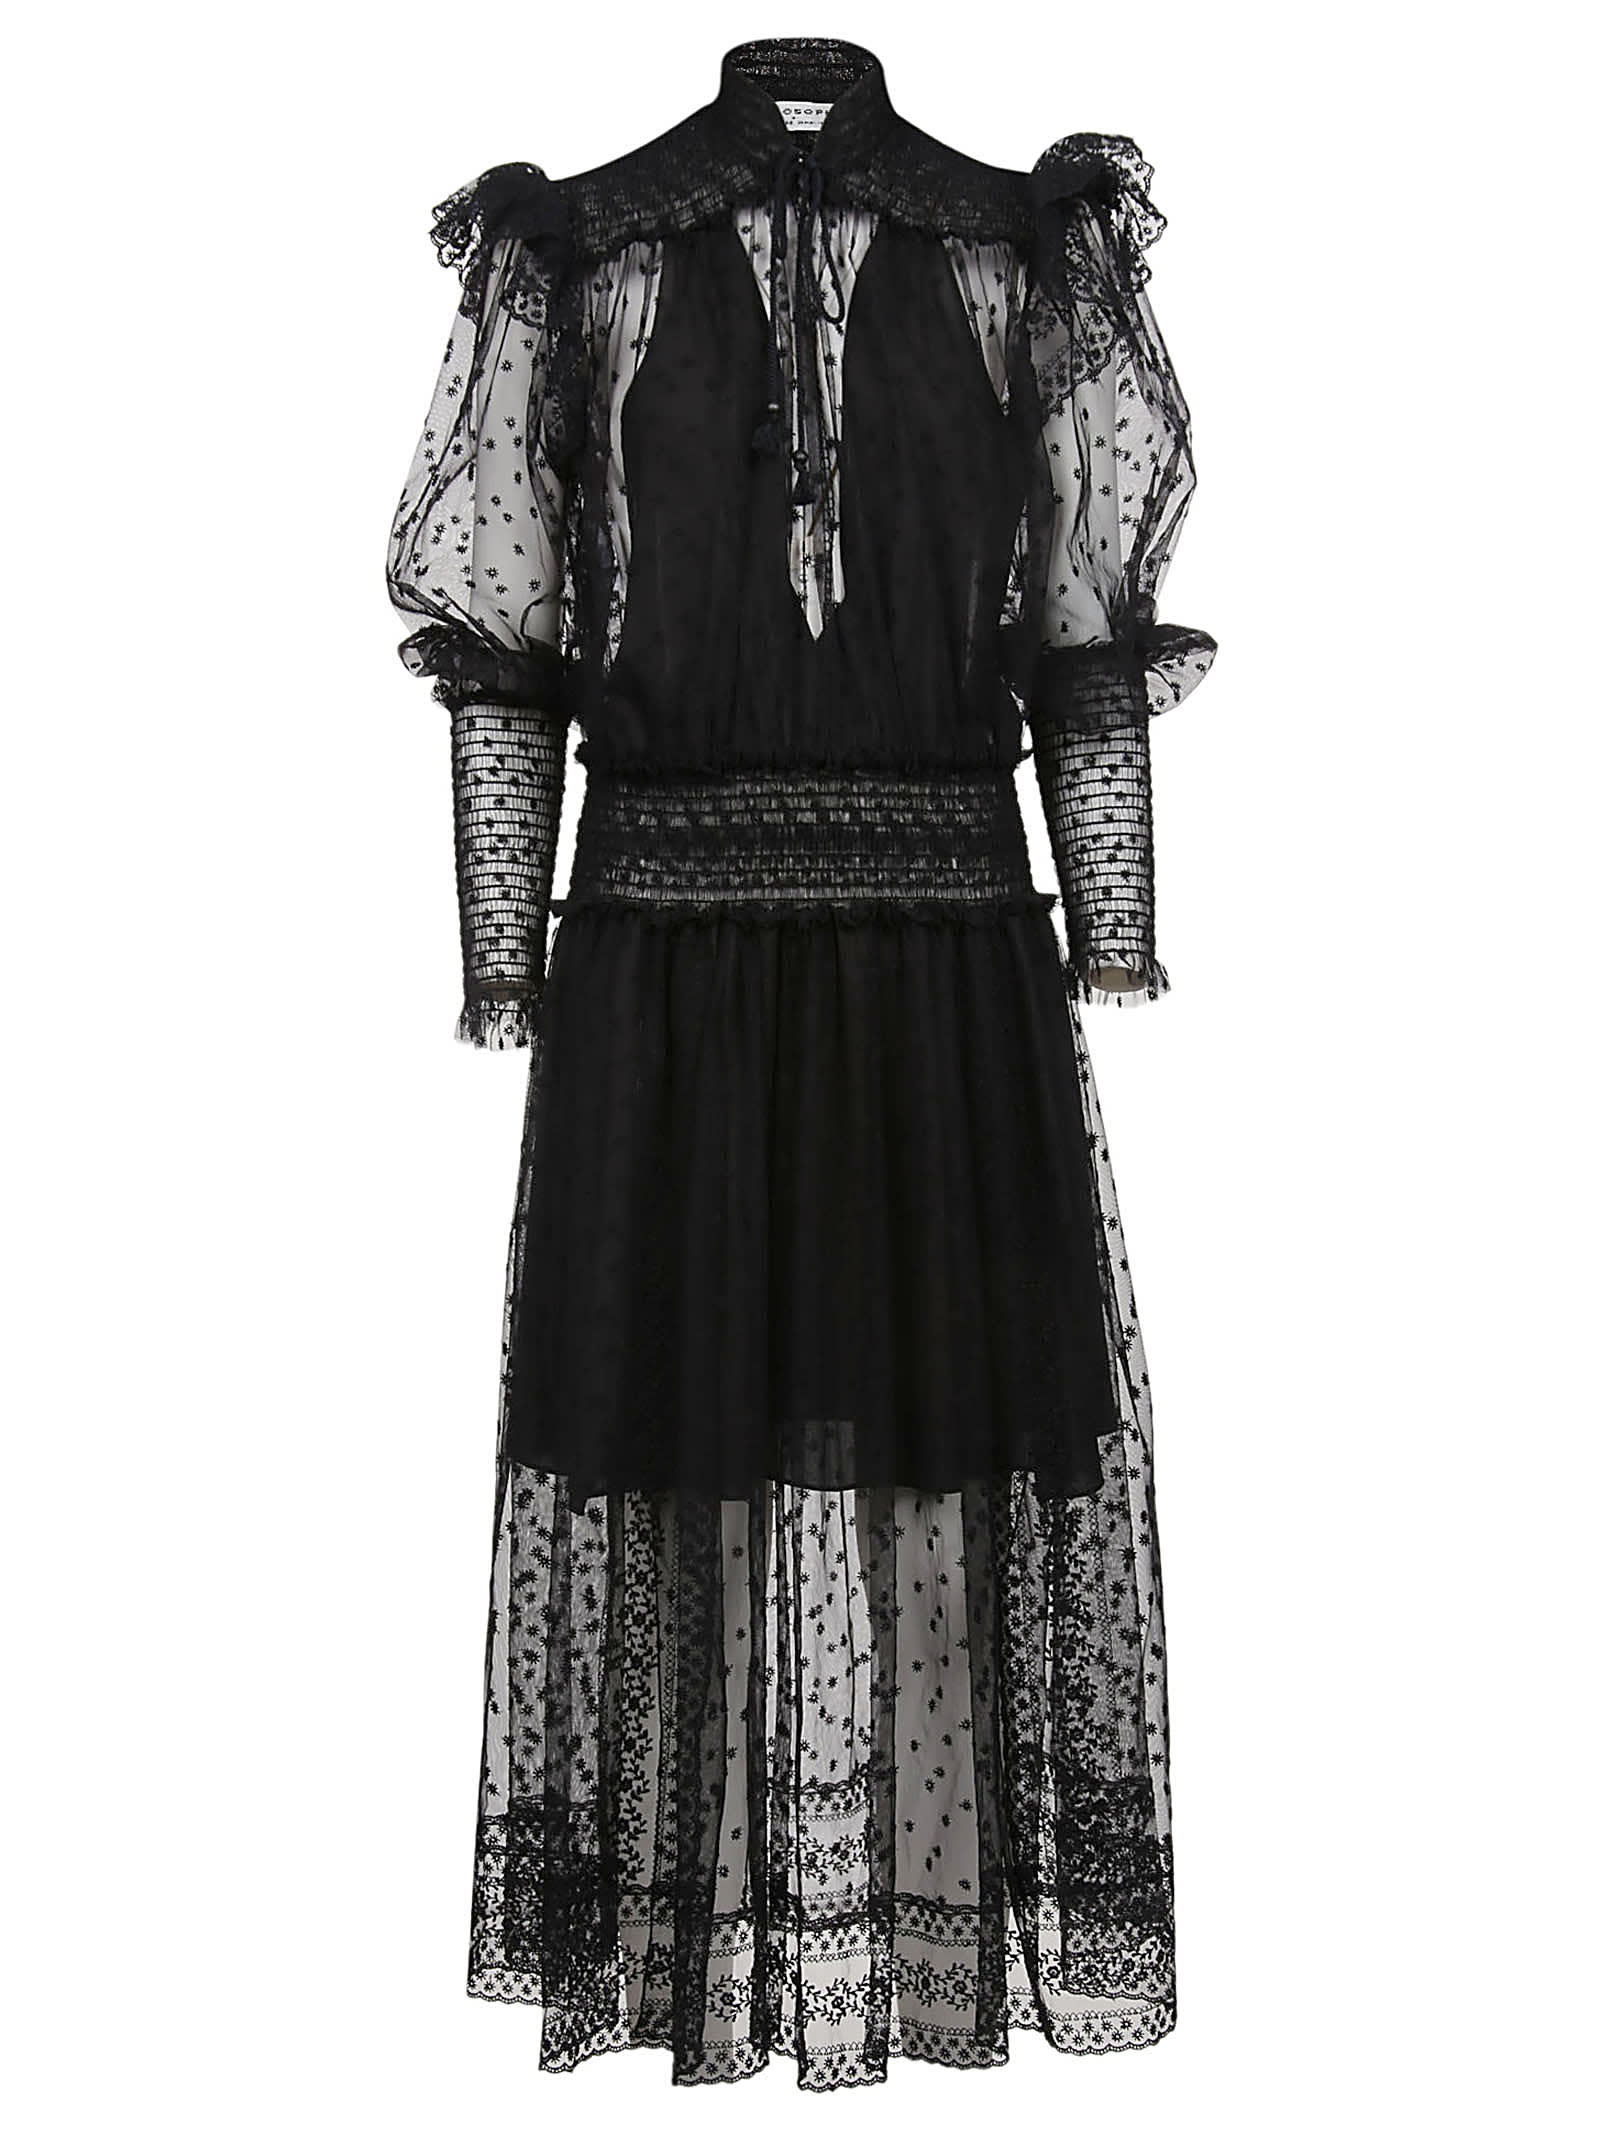 Philosophy di Lorenzo Serafini Lace Frill Dress